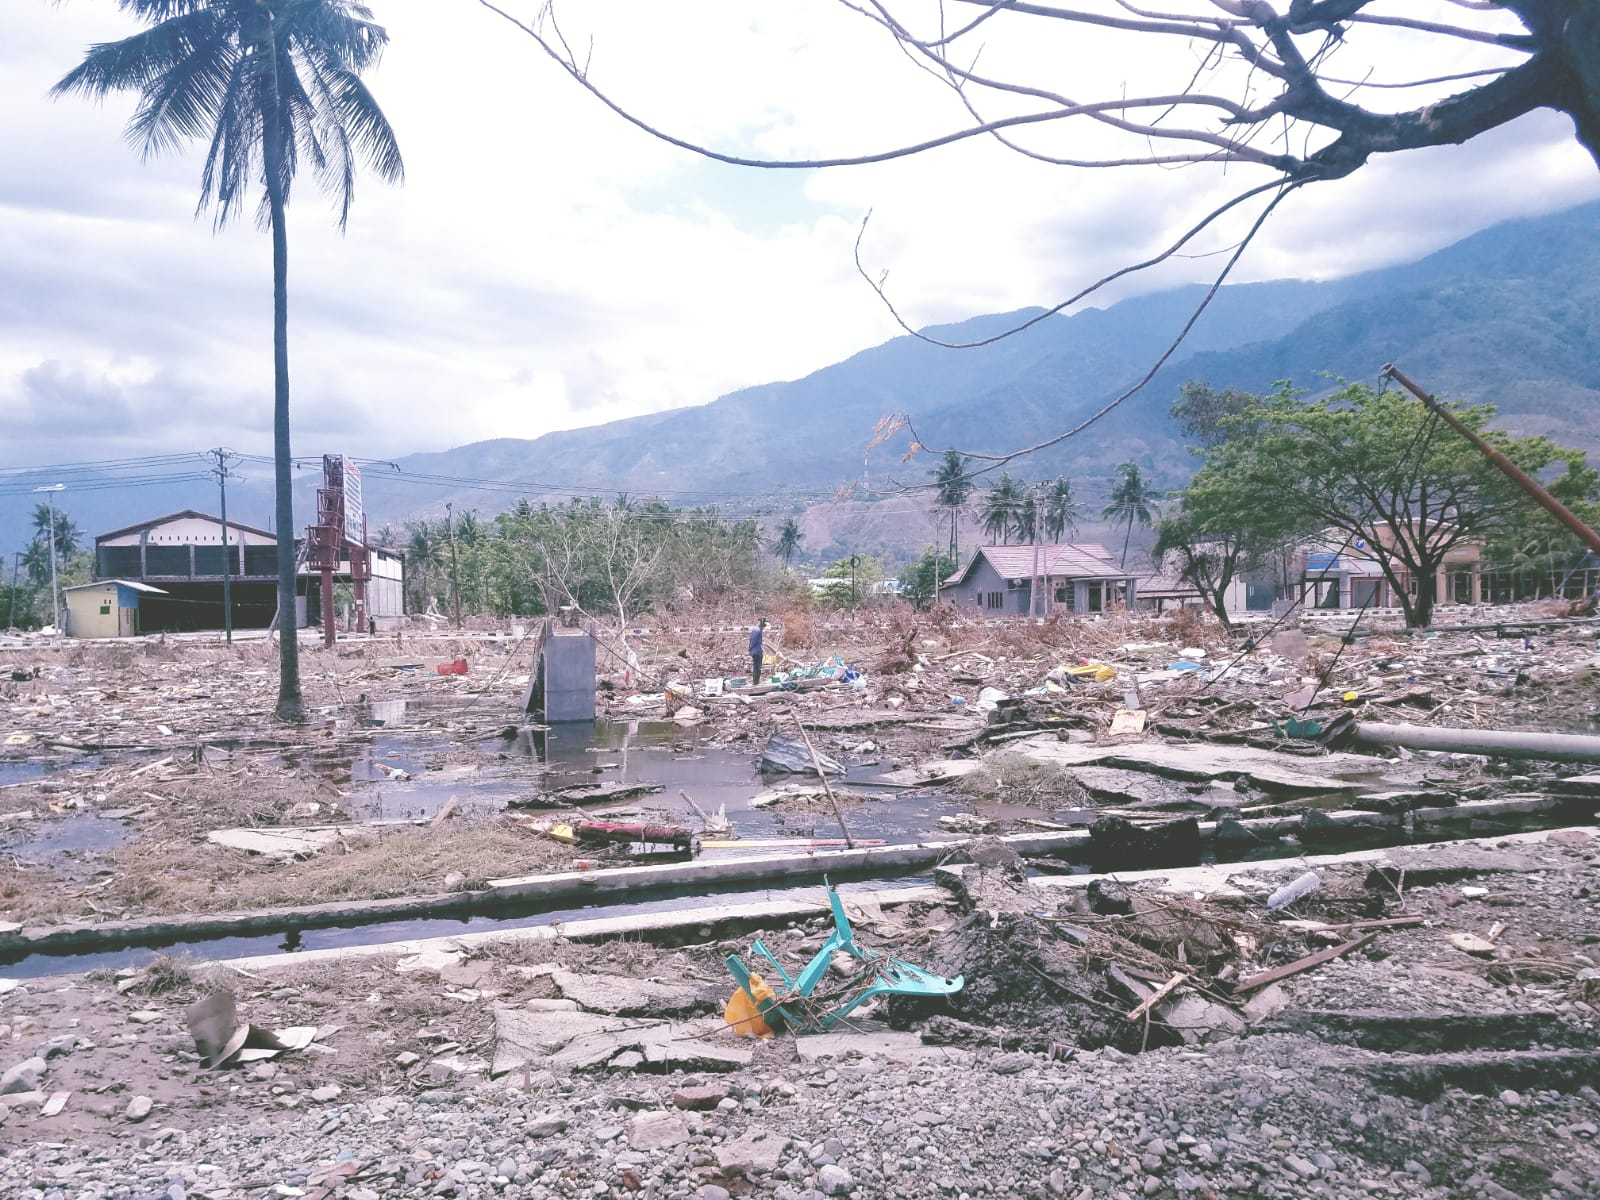 Destruction in Palu, Indonesia. (Gordon Willcock/Direct Relief)